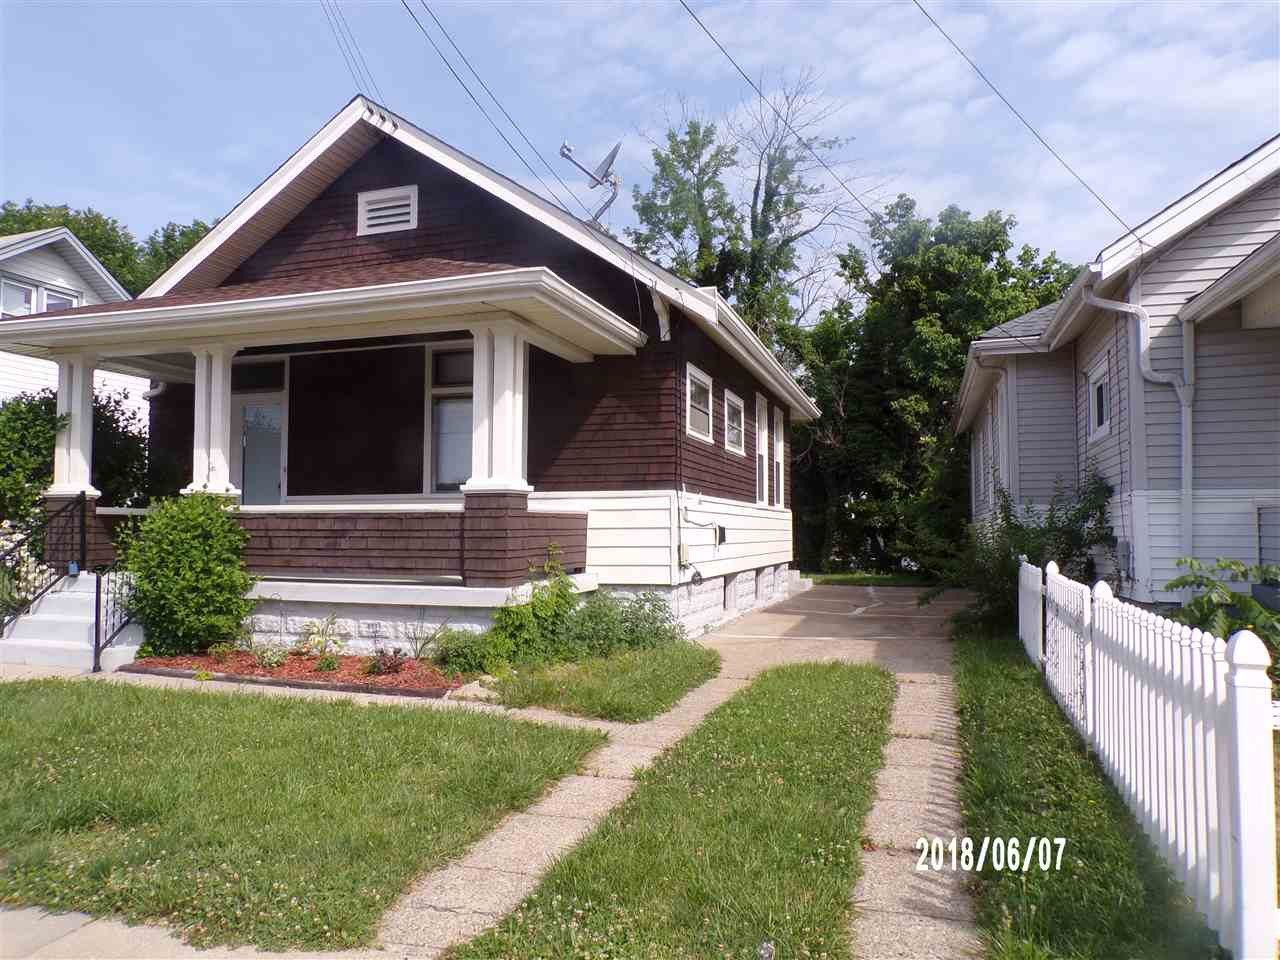 Photo 1 for 16 E 32nd St Covington, KY 41015